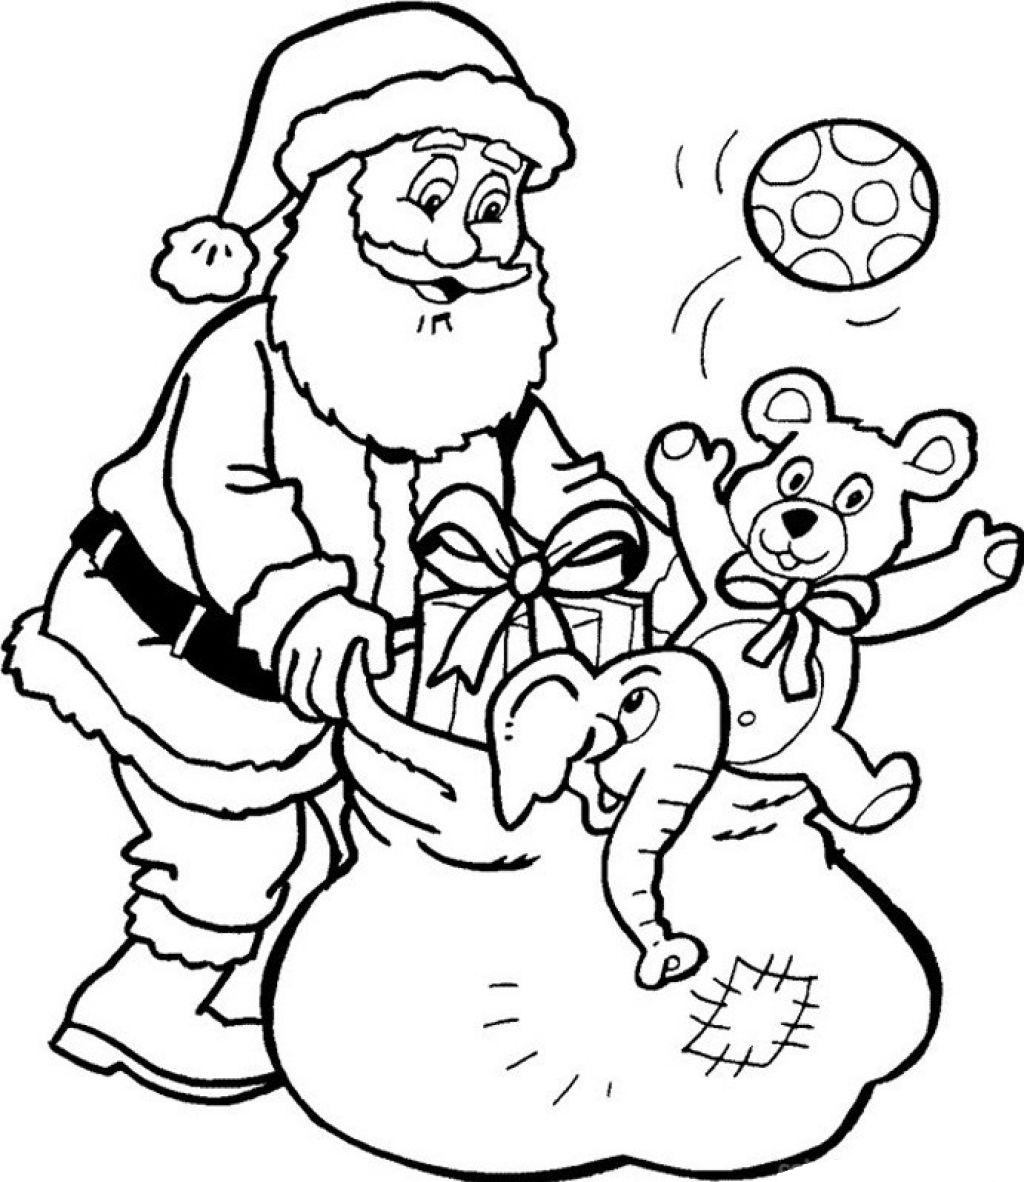 Drawing Picture Of Santa Claus at GetDrawings.com | Free for ...